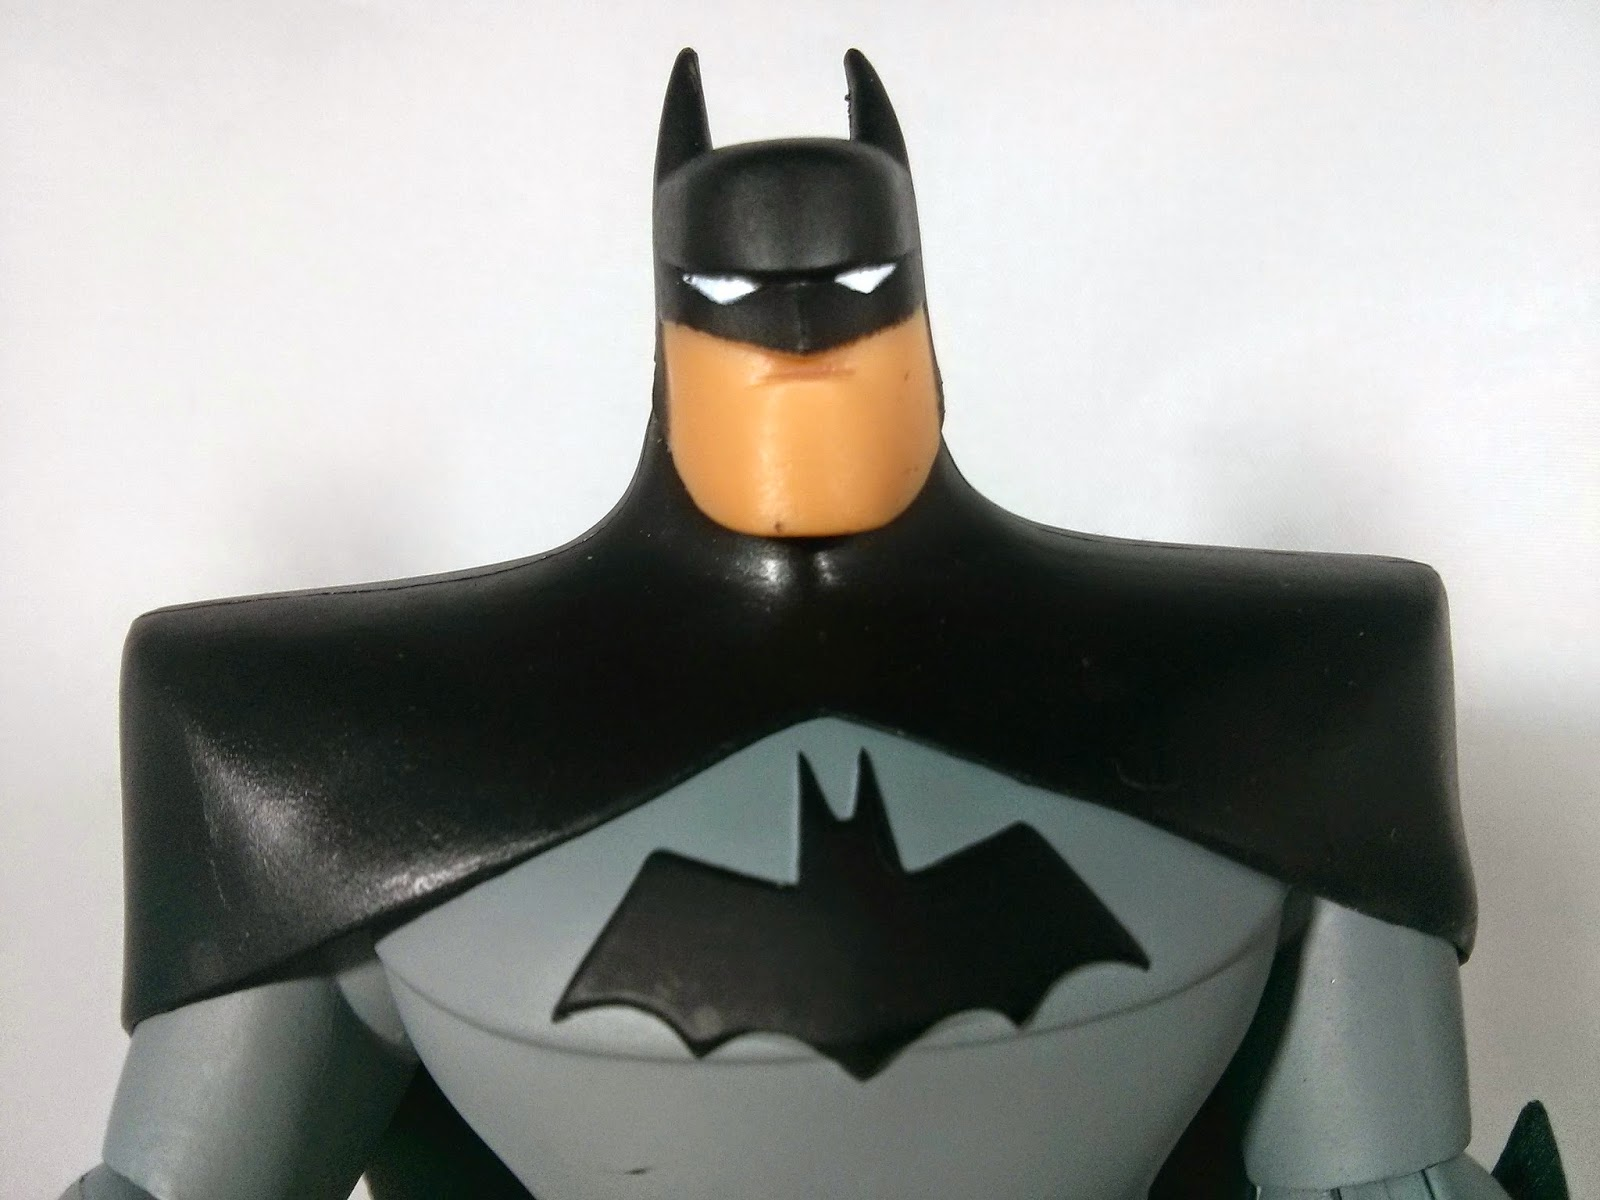 New adventures of batman head dc collectibles